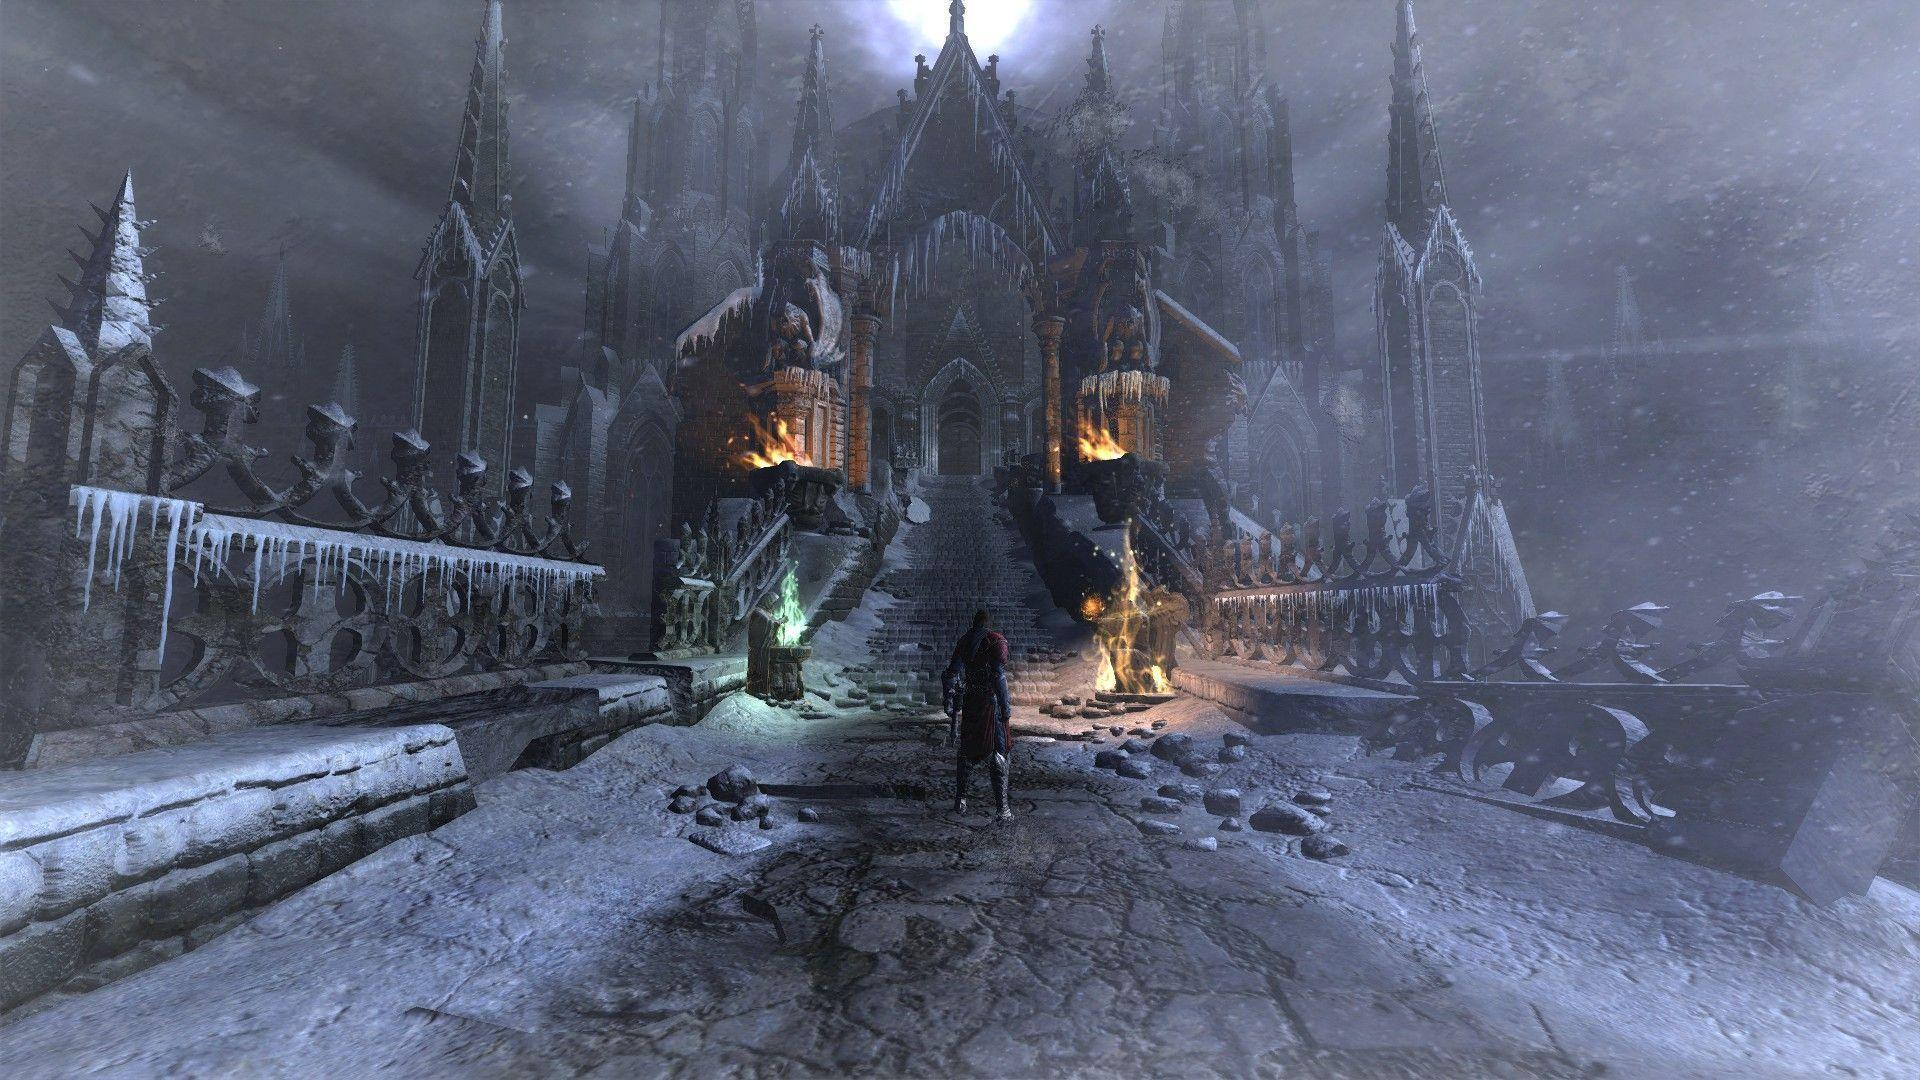 Horror Hd Wallpapers For Laptop Castlevania Backgrounds Wallpaper Cave